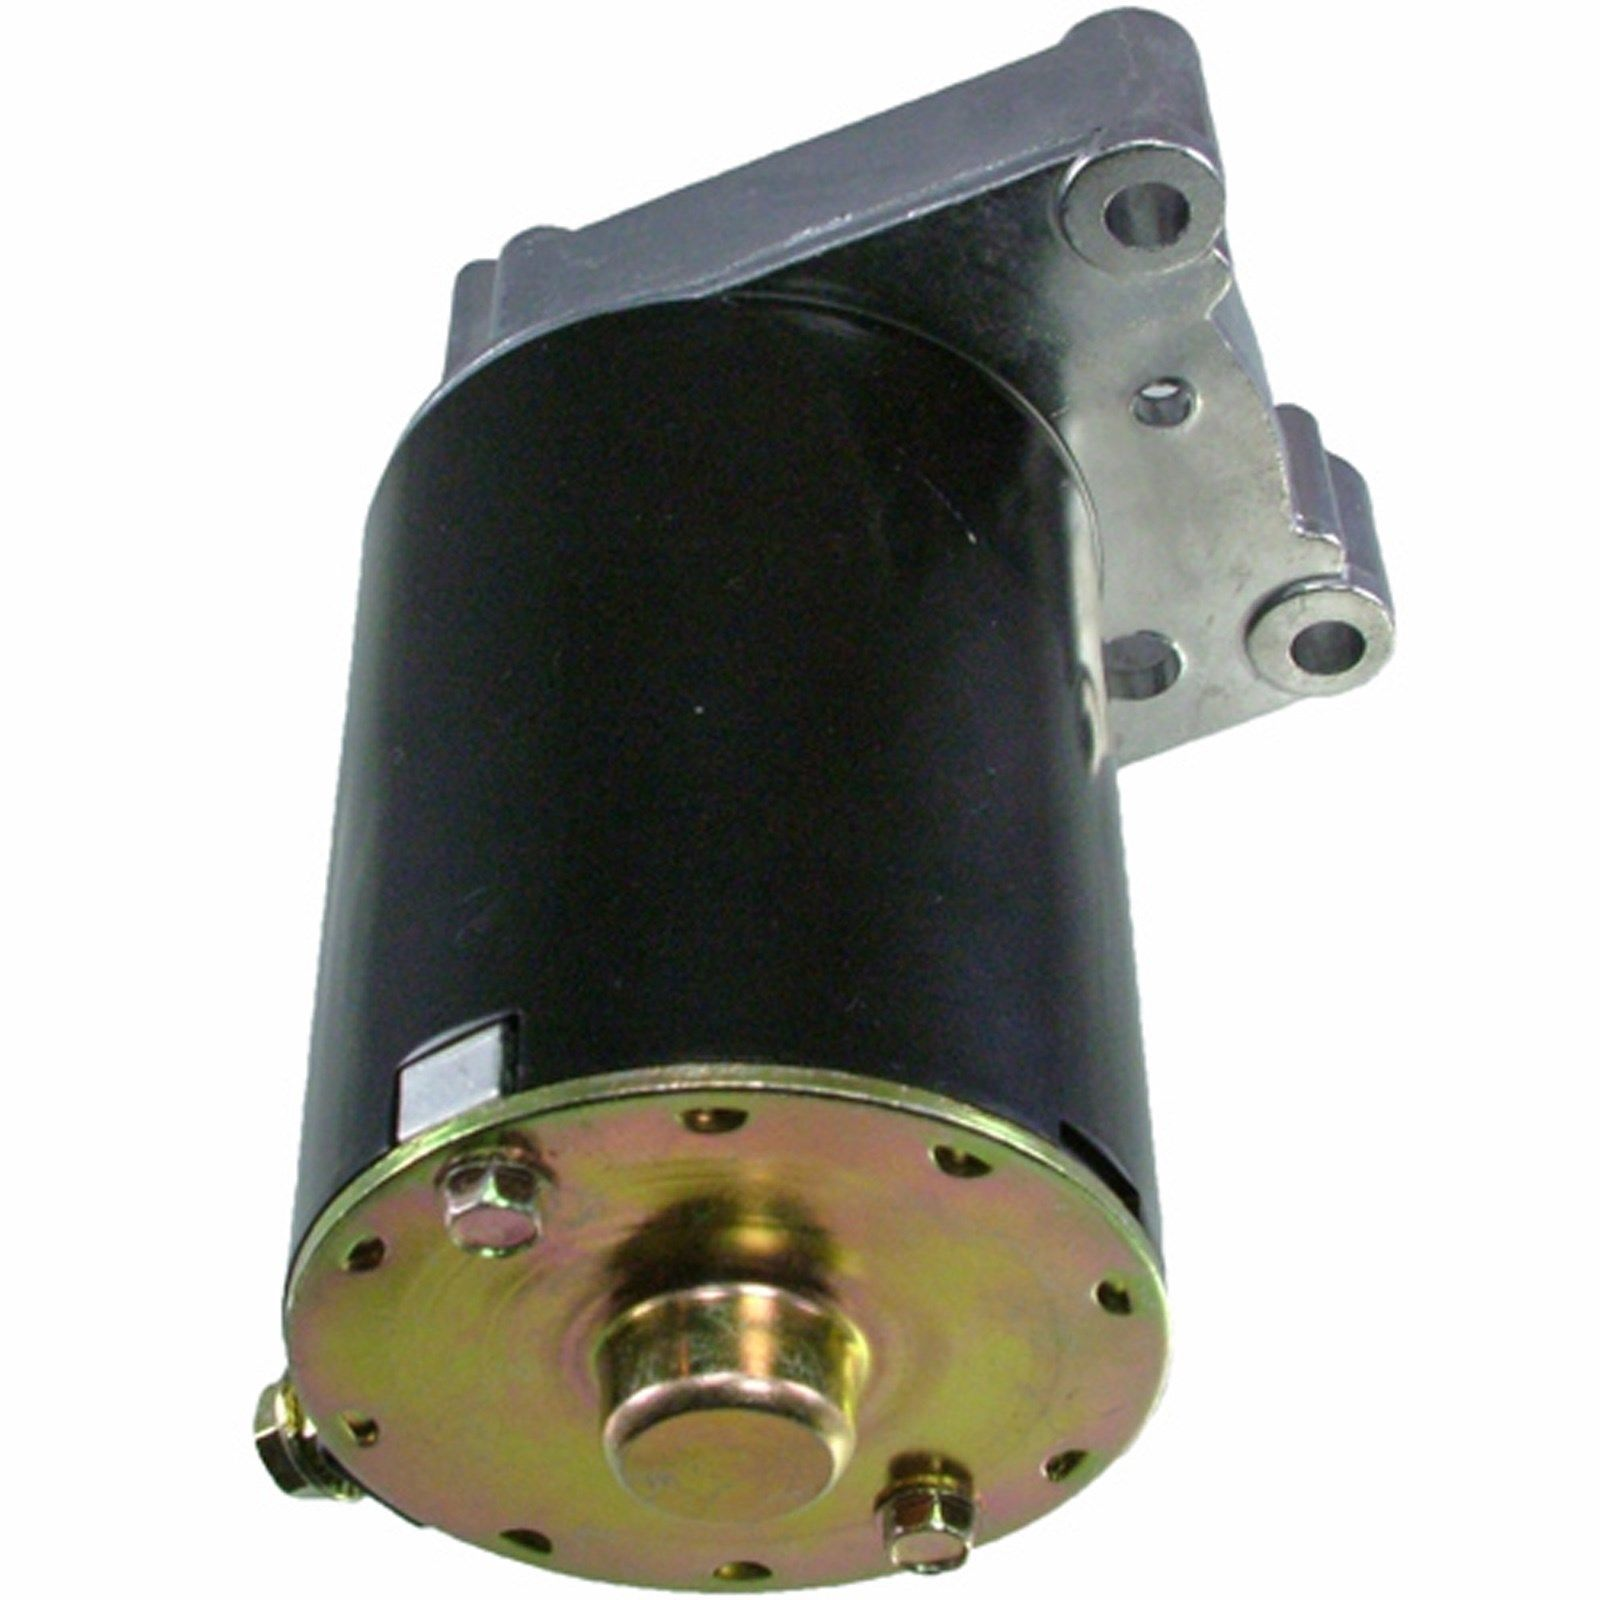 New Starter For Briggs /& Stratton Air Cooled 14HP 16HP 18HP 1996-1998